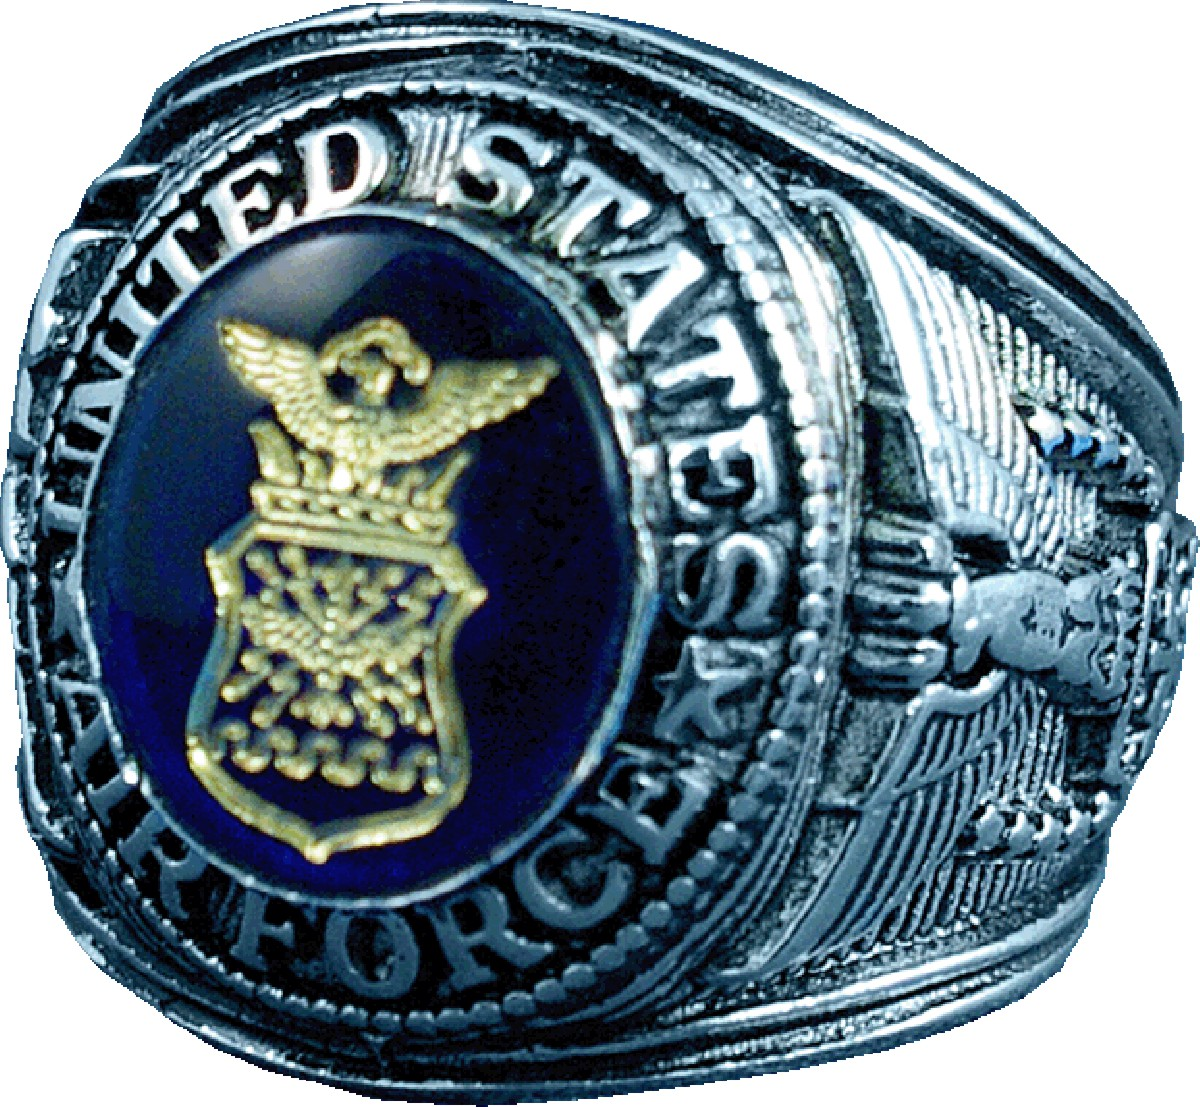 United States Air Force Ring Mcmxlvii